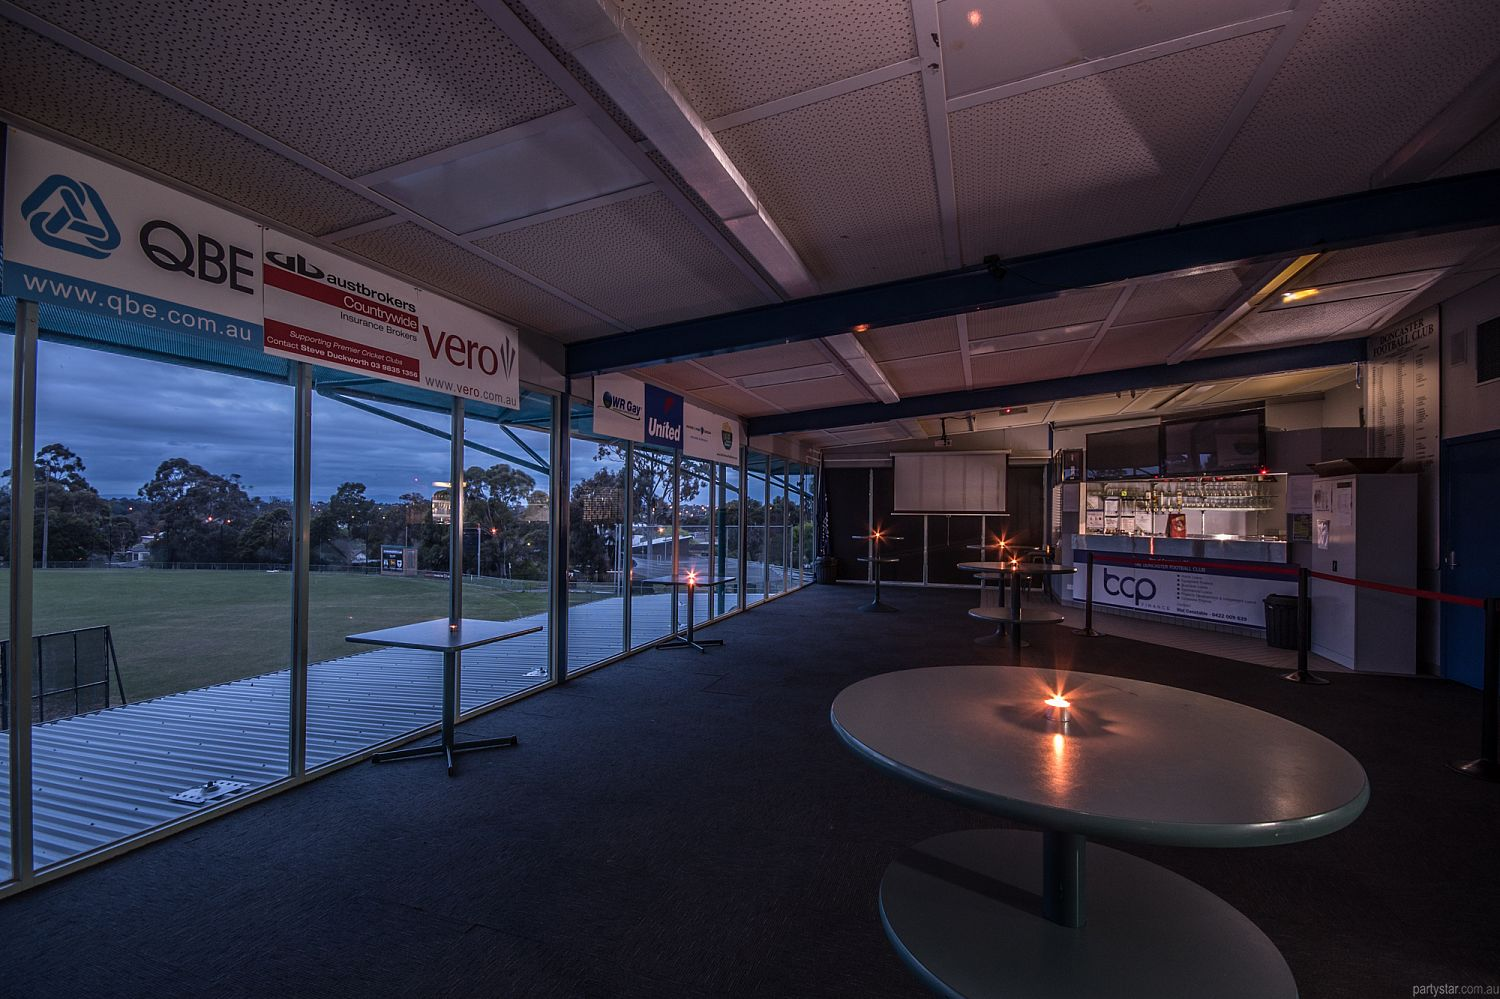 Schramms Sports Club, Doncaster, VIC. Function Room hire photo #2